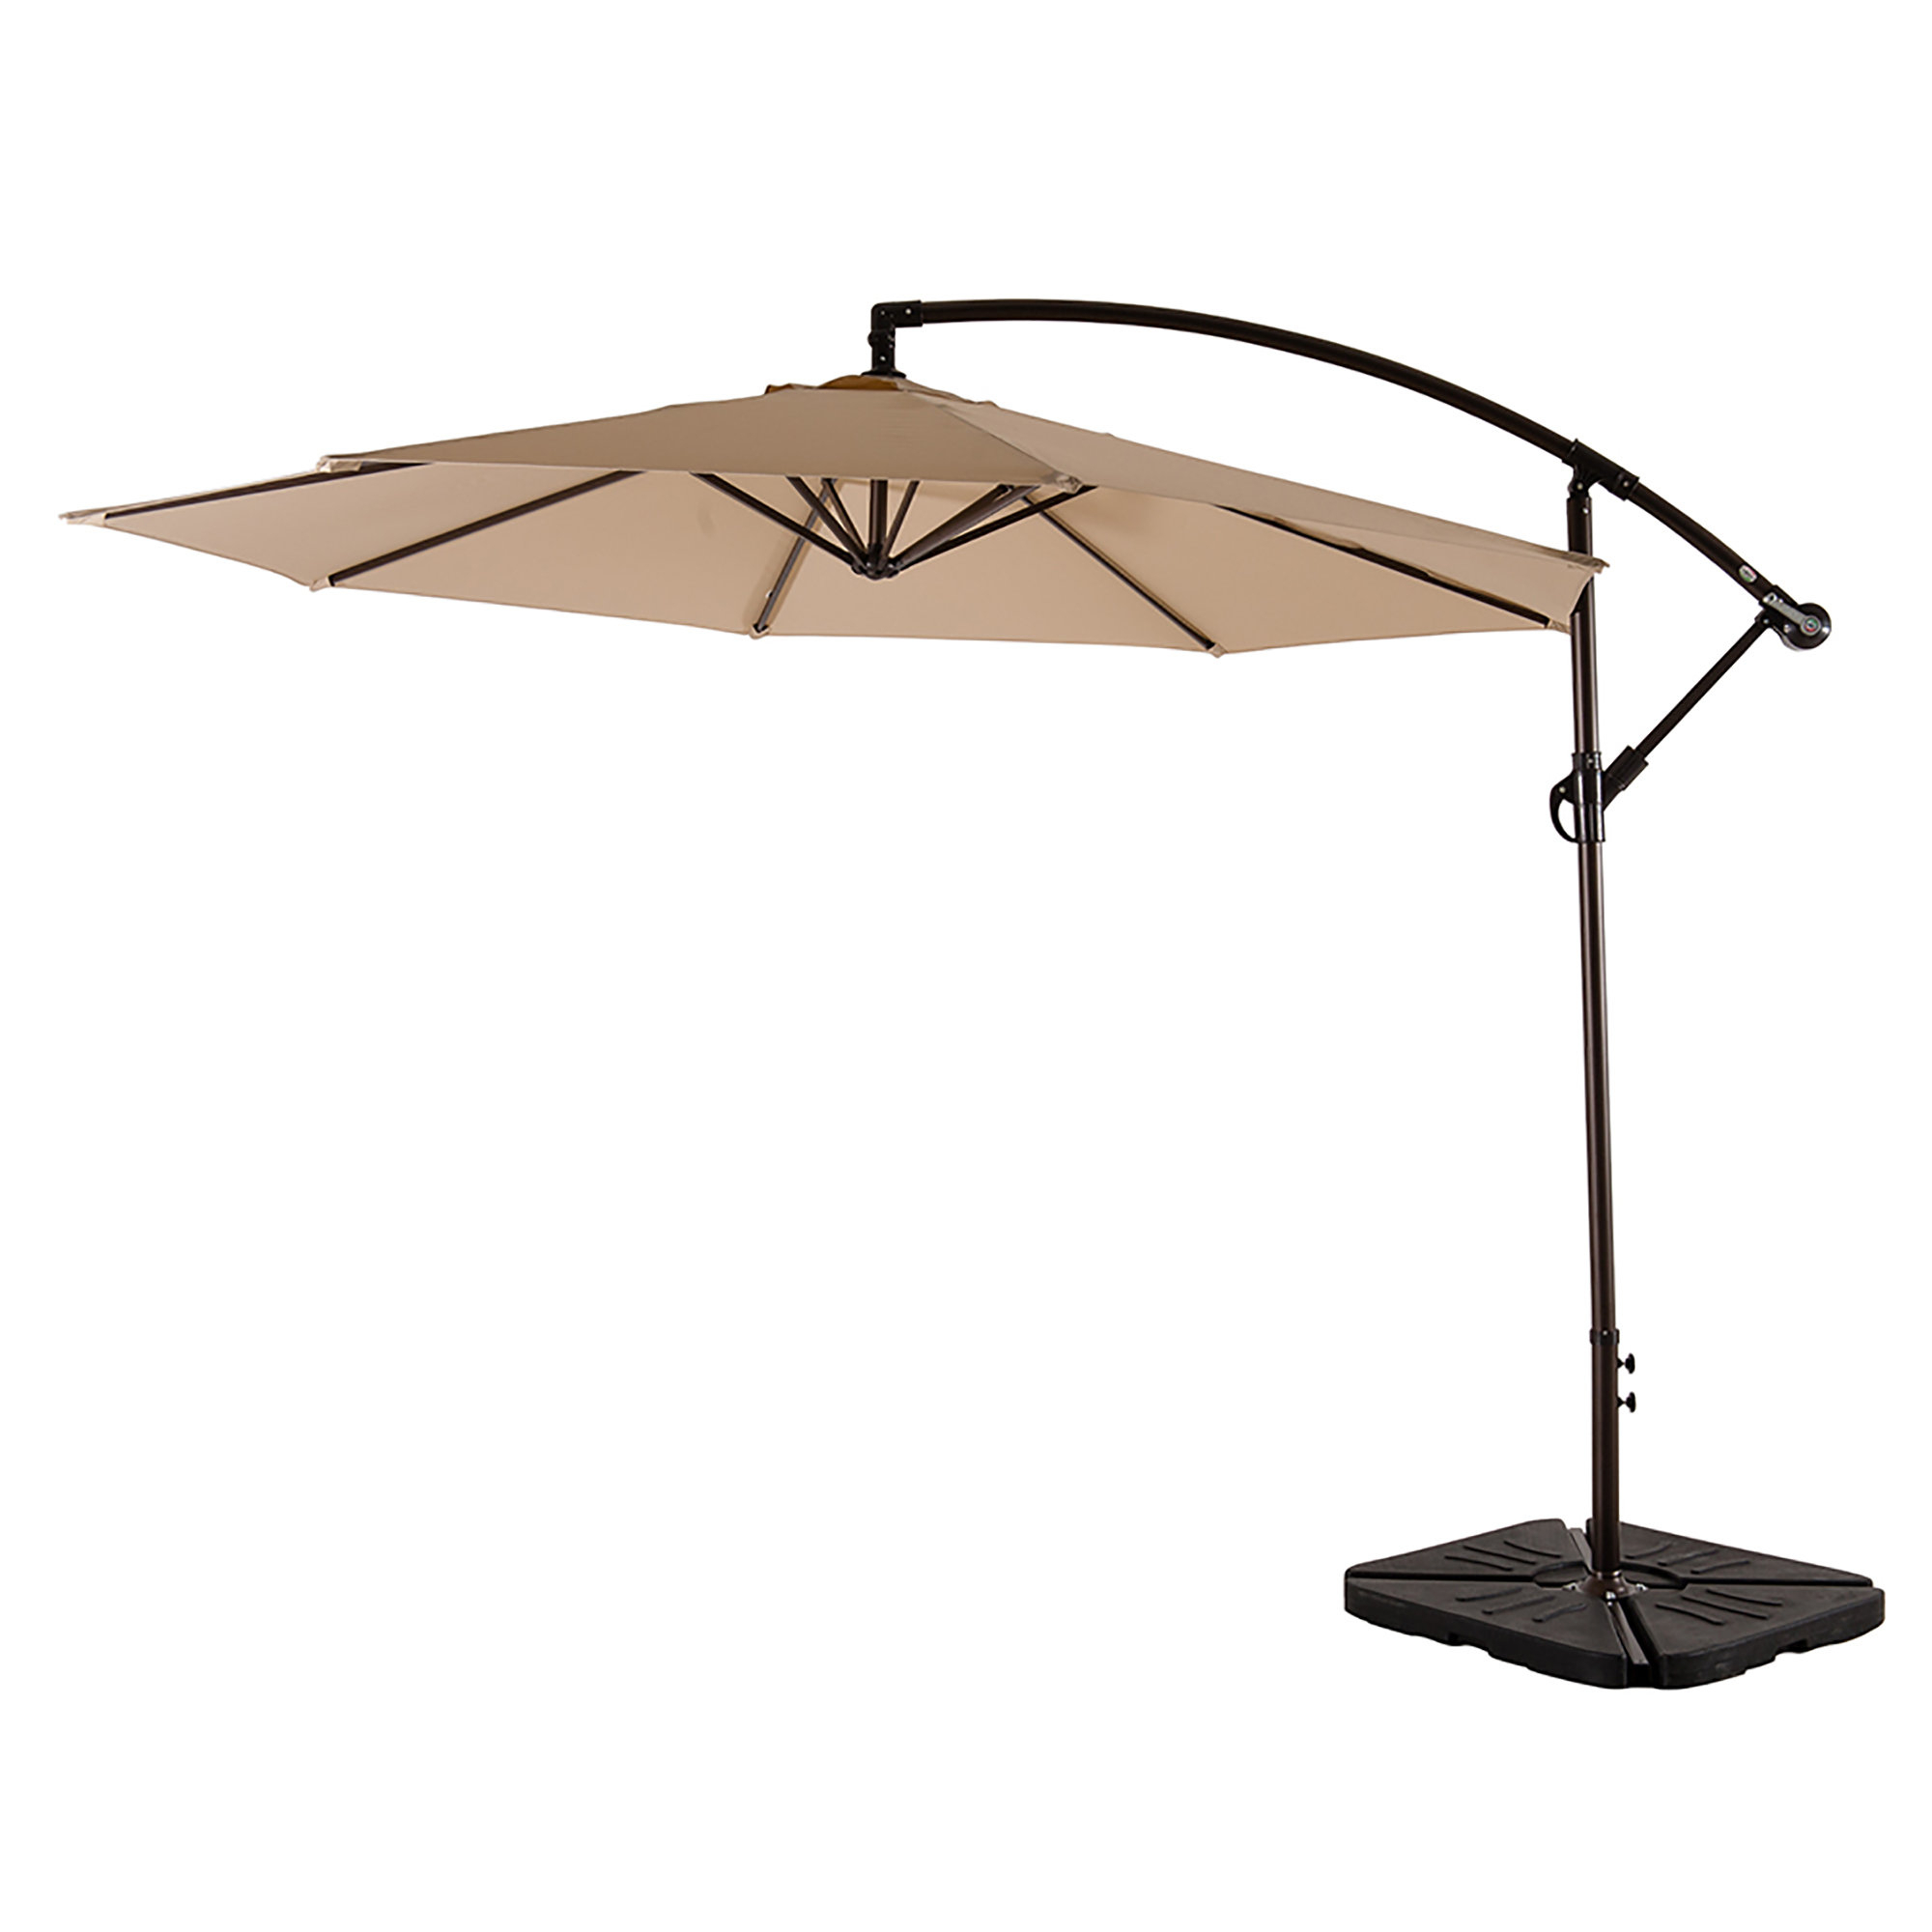 Newest Bostic Cantilever Umbrellas Within Kizzie Market 10' Cantilever Umbrella (Gallery 7 of 20)